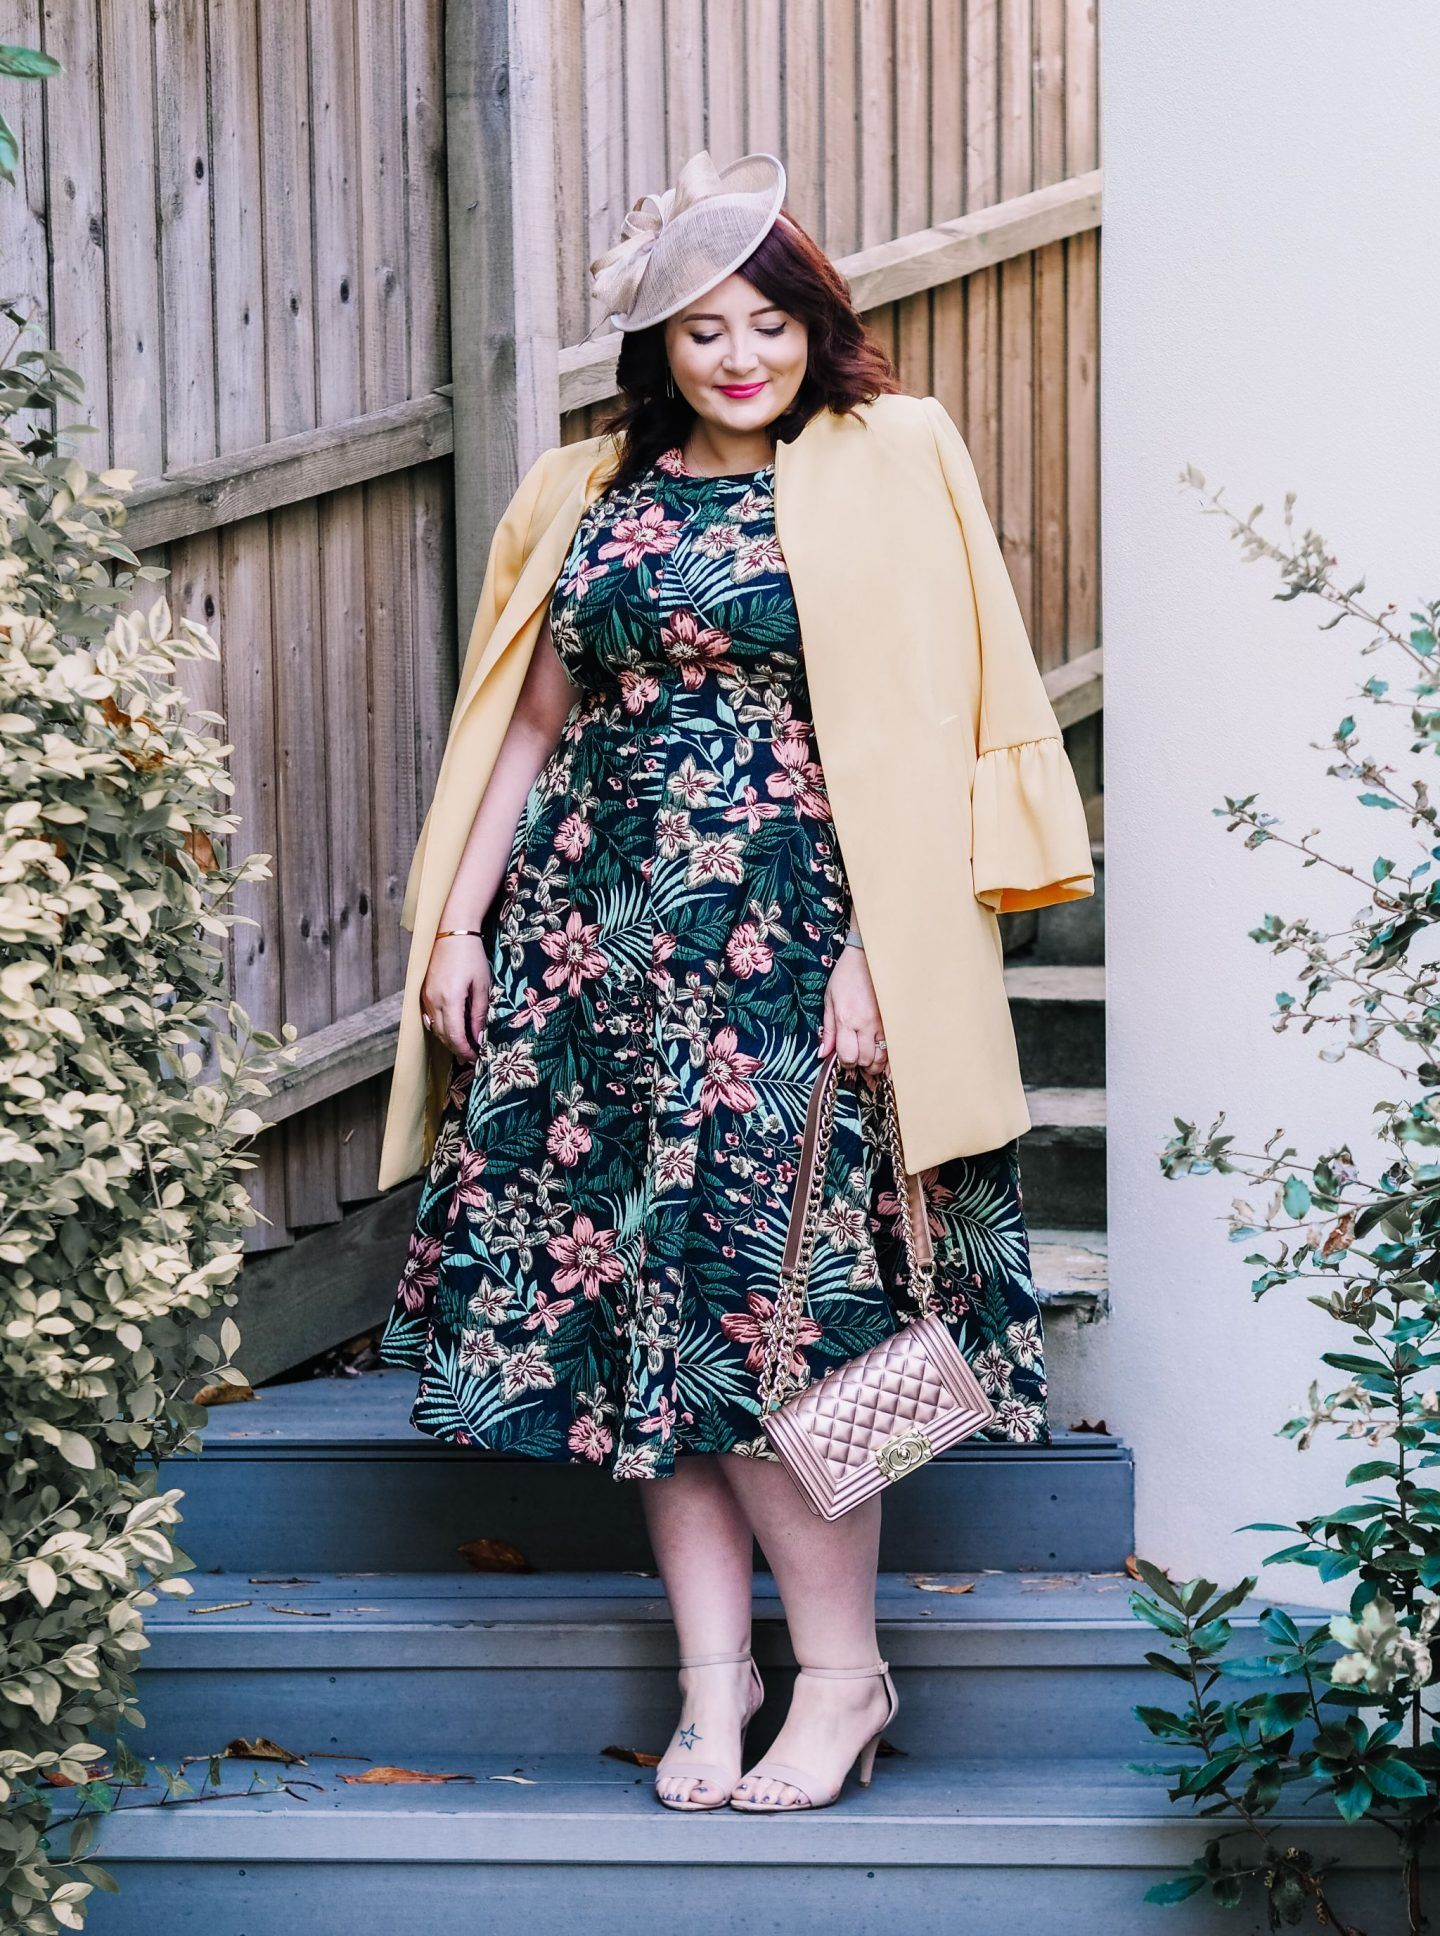 What To Wear To An Autumn Wedding If You Re 30 And Curvy Plus Size Wedding Guest Wedding Guest Outfit Fall Wedding Guest Outfit Winter Fall Wedding Outfits